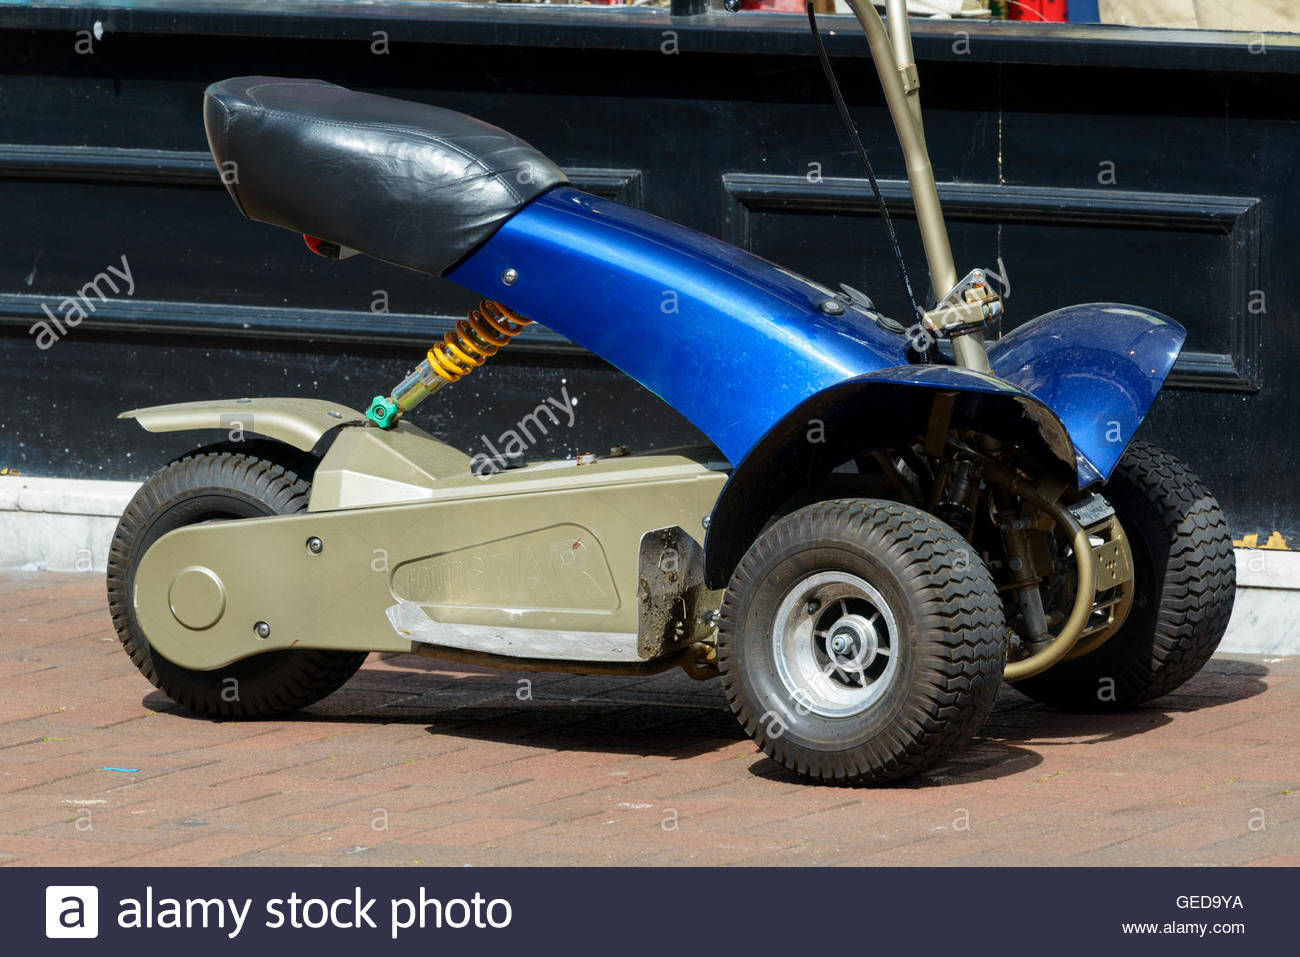 Golf buggy used as mobility scooter, Poole, Dorset, England, Britain, UK - Stock Image